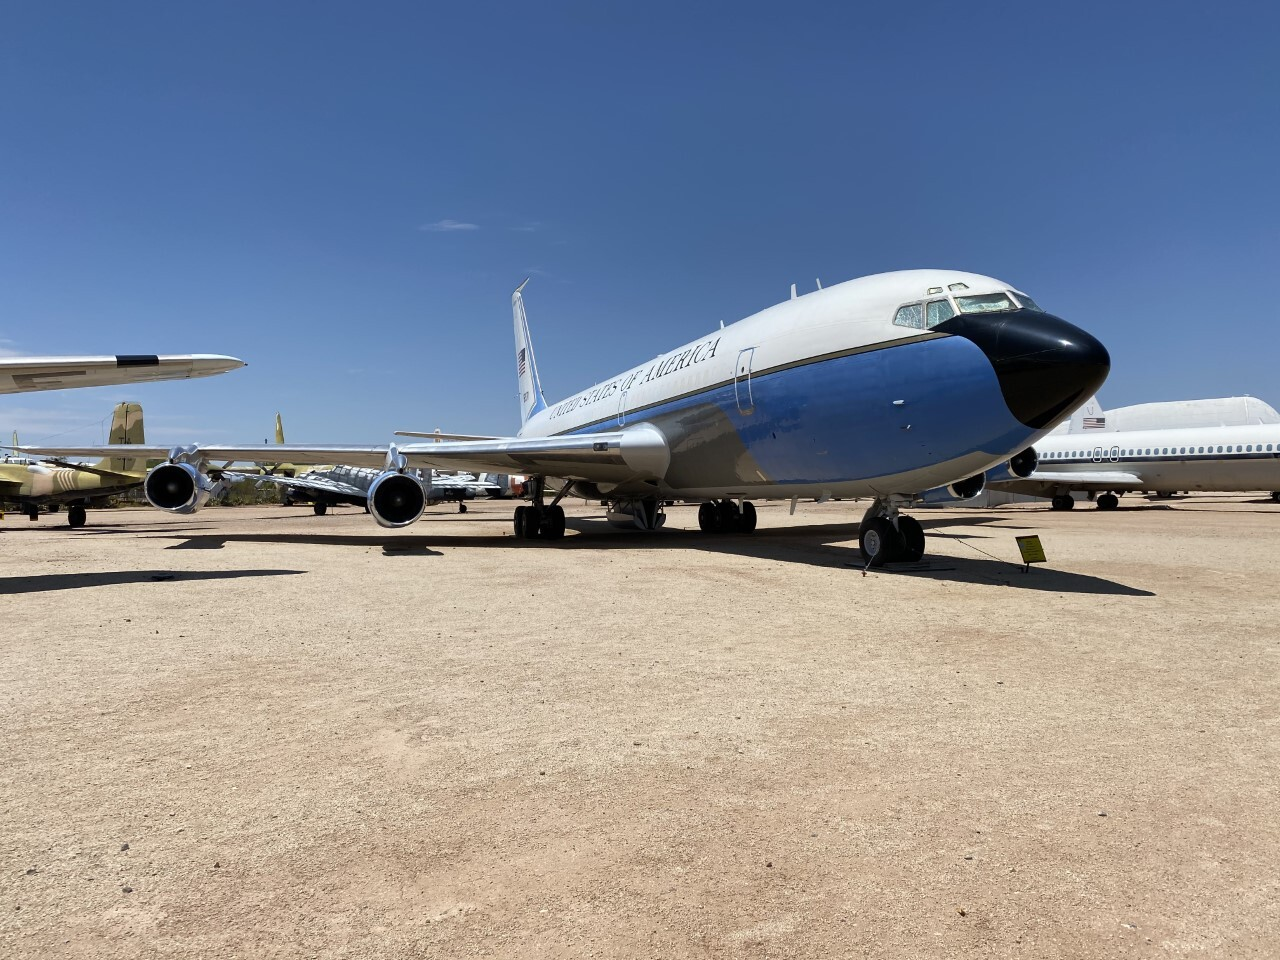 Pima Air & Space